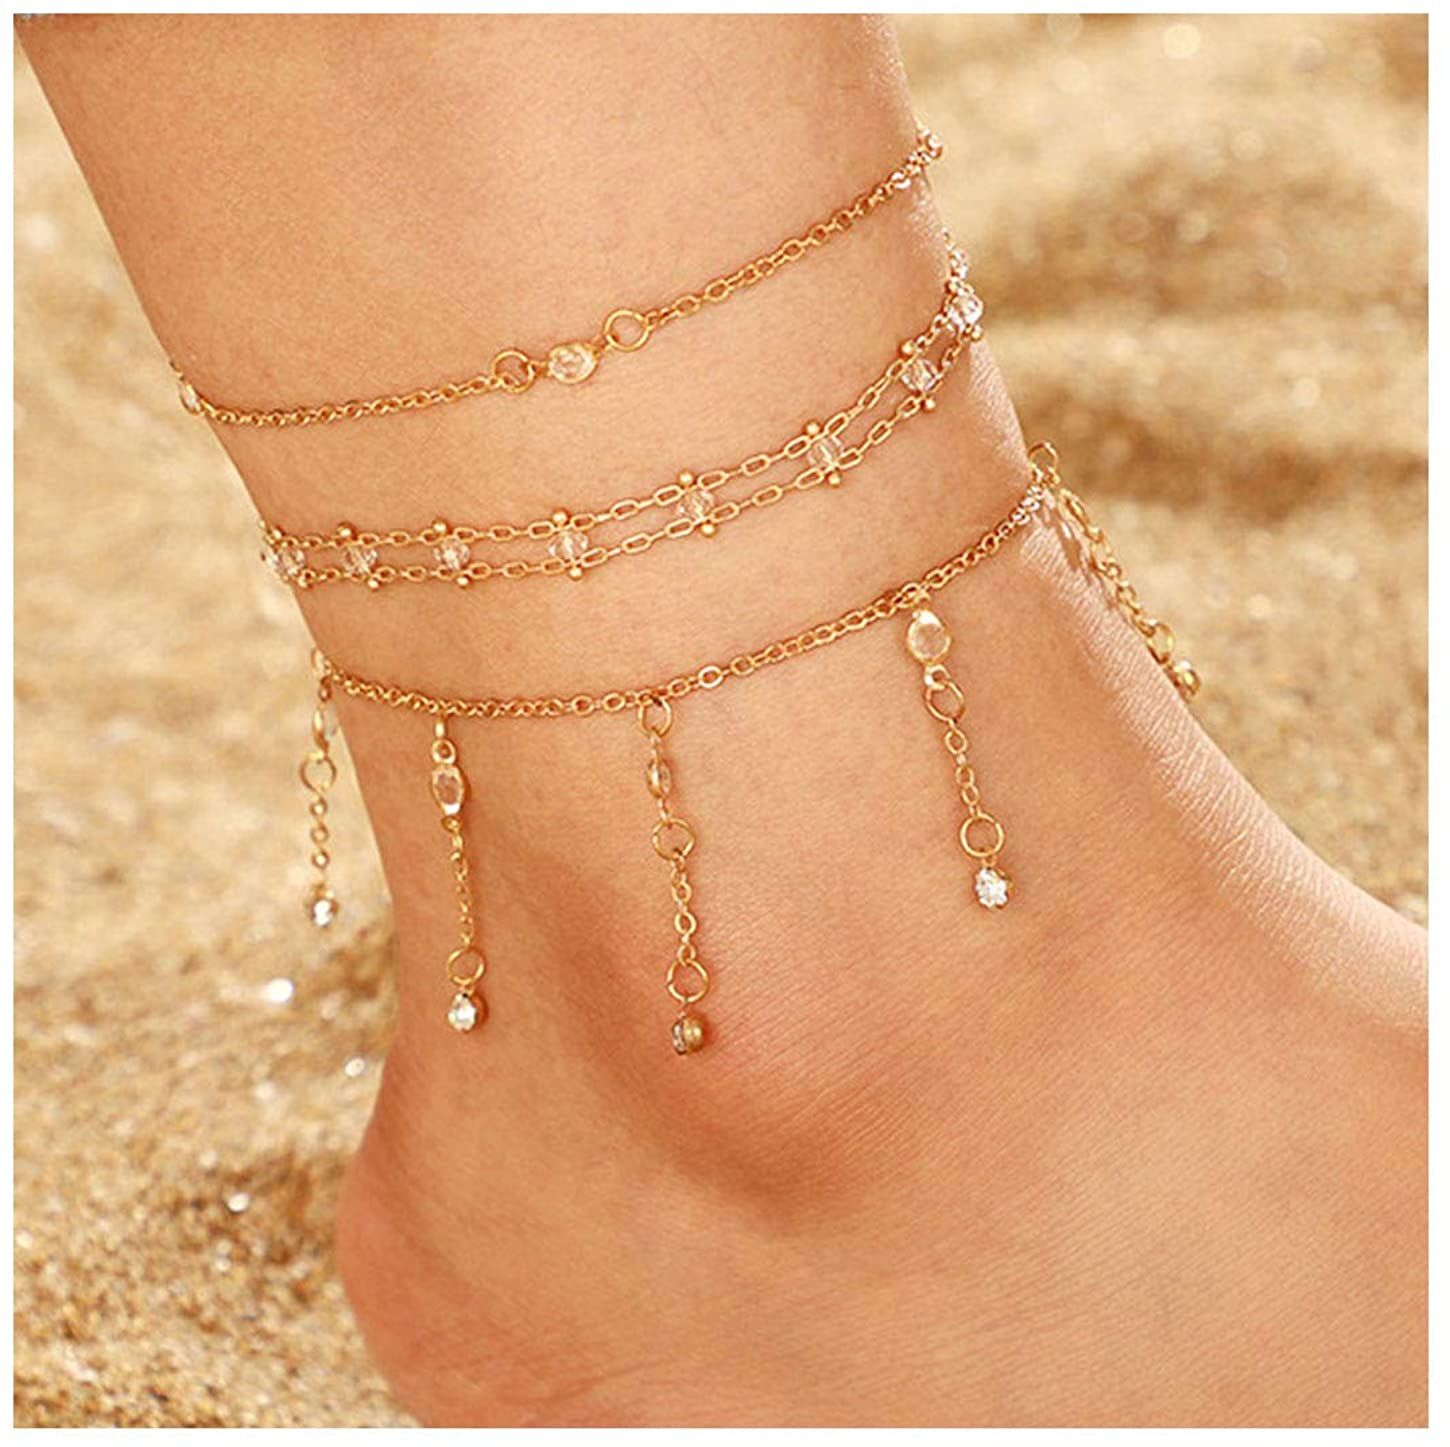 deladola Boho Anklets Bracelet Gold Crystal Tassel Layered Pendant Ankle Bracelets Beads Beach Foot Chains Jewelry for Women and Girls(3 PCS)PCS)